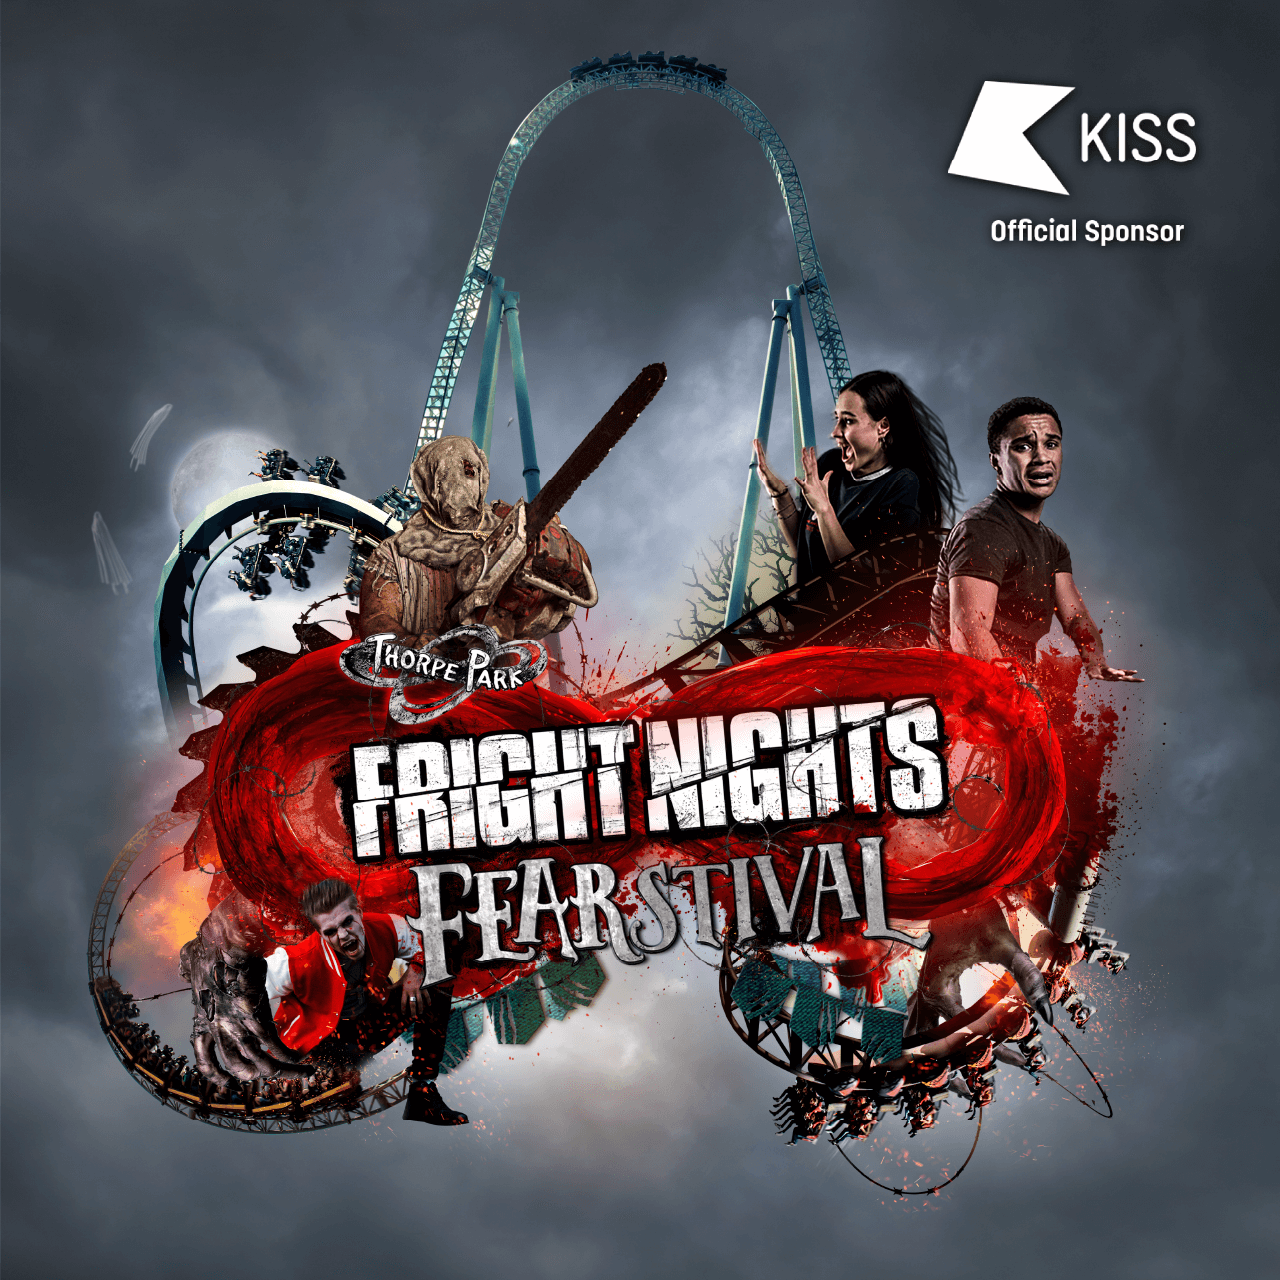 Fright Nights Fearstival